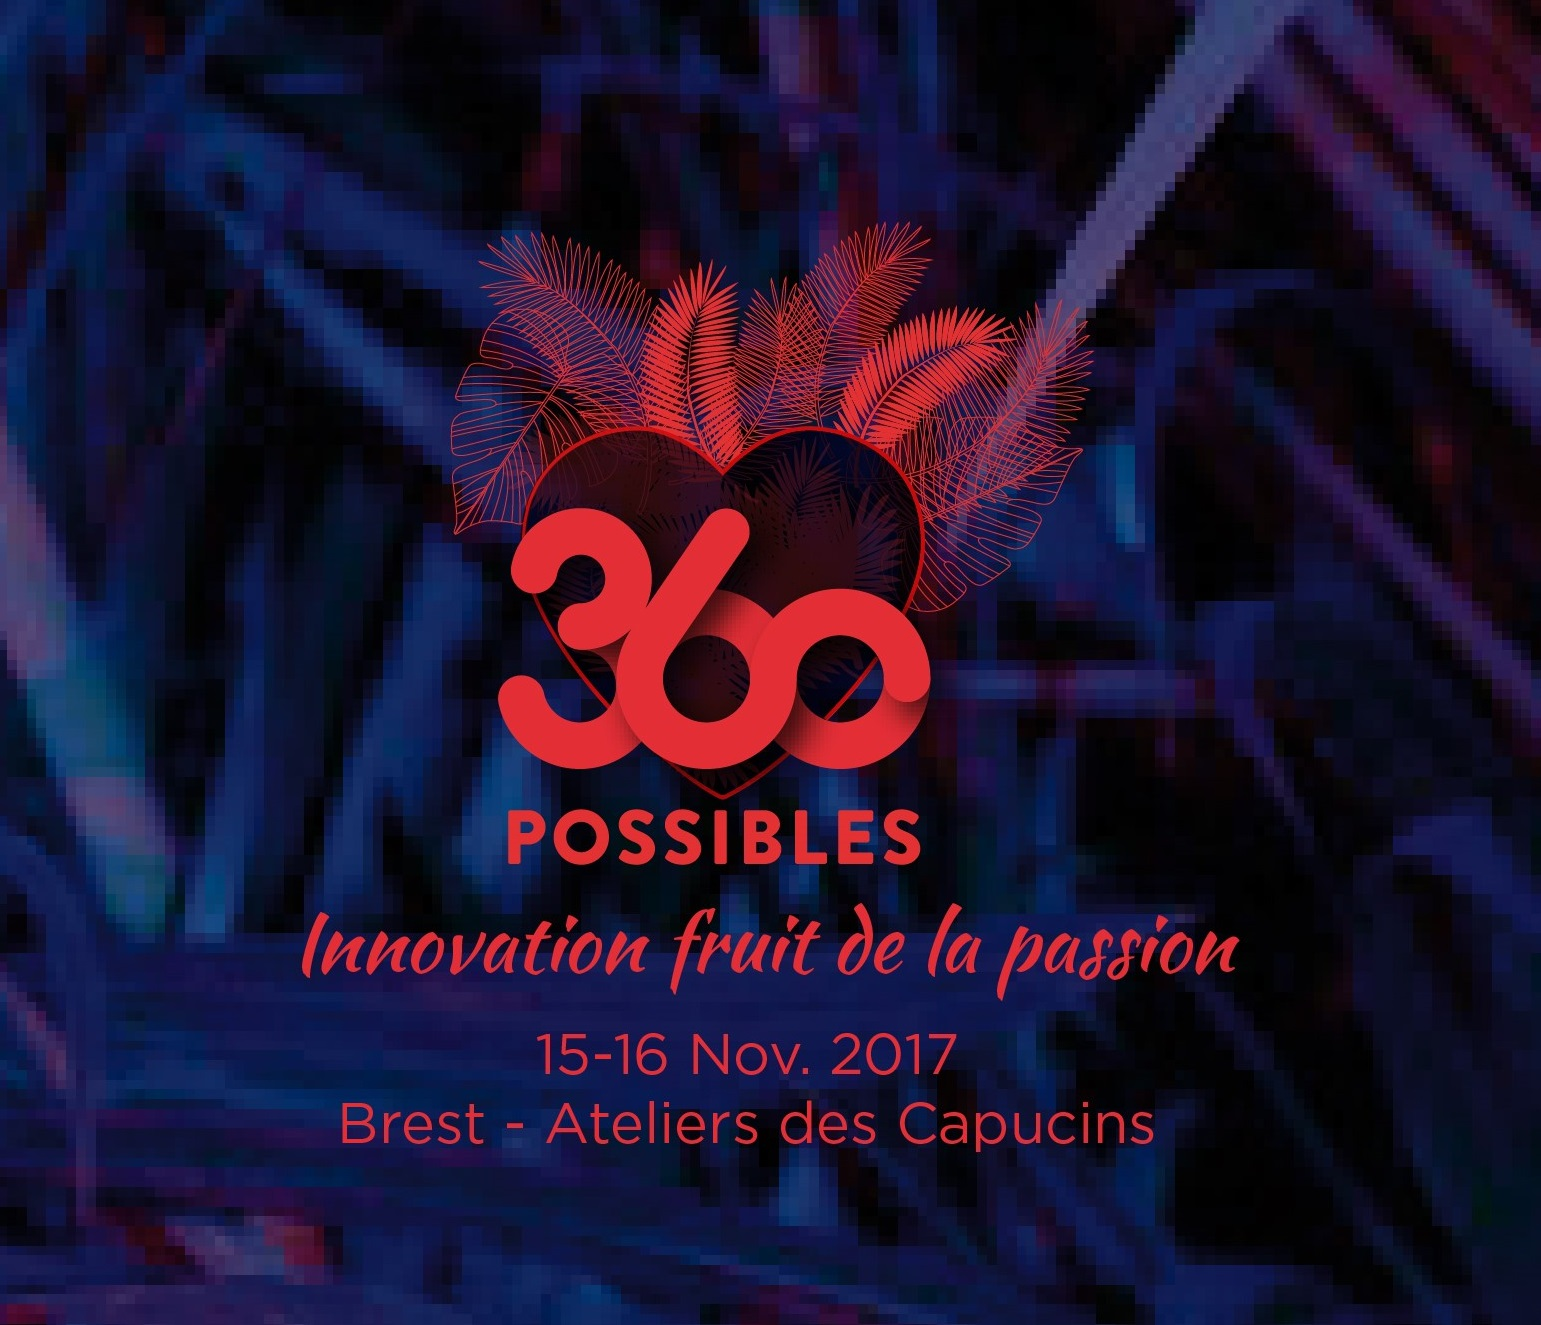 360 Possibles - Brest